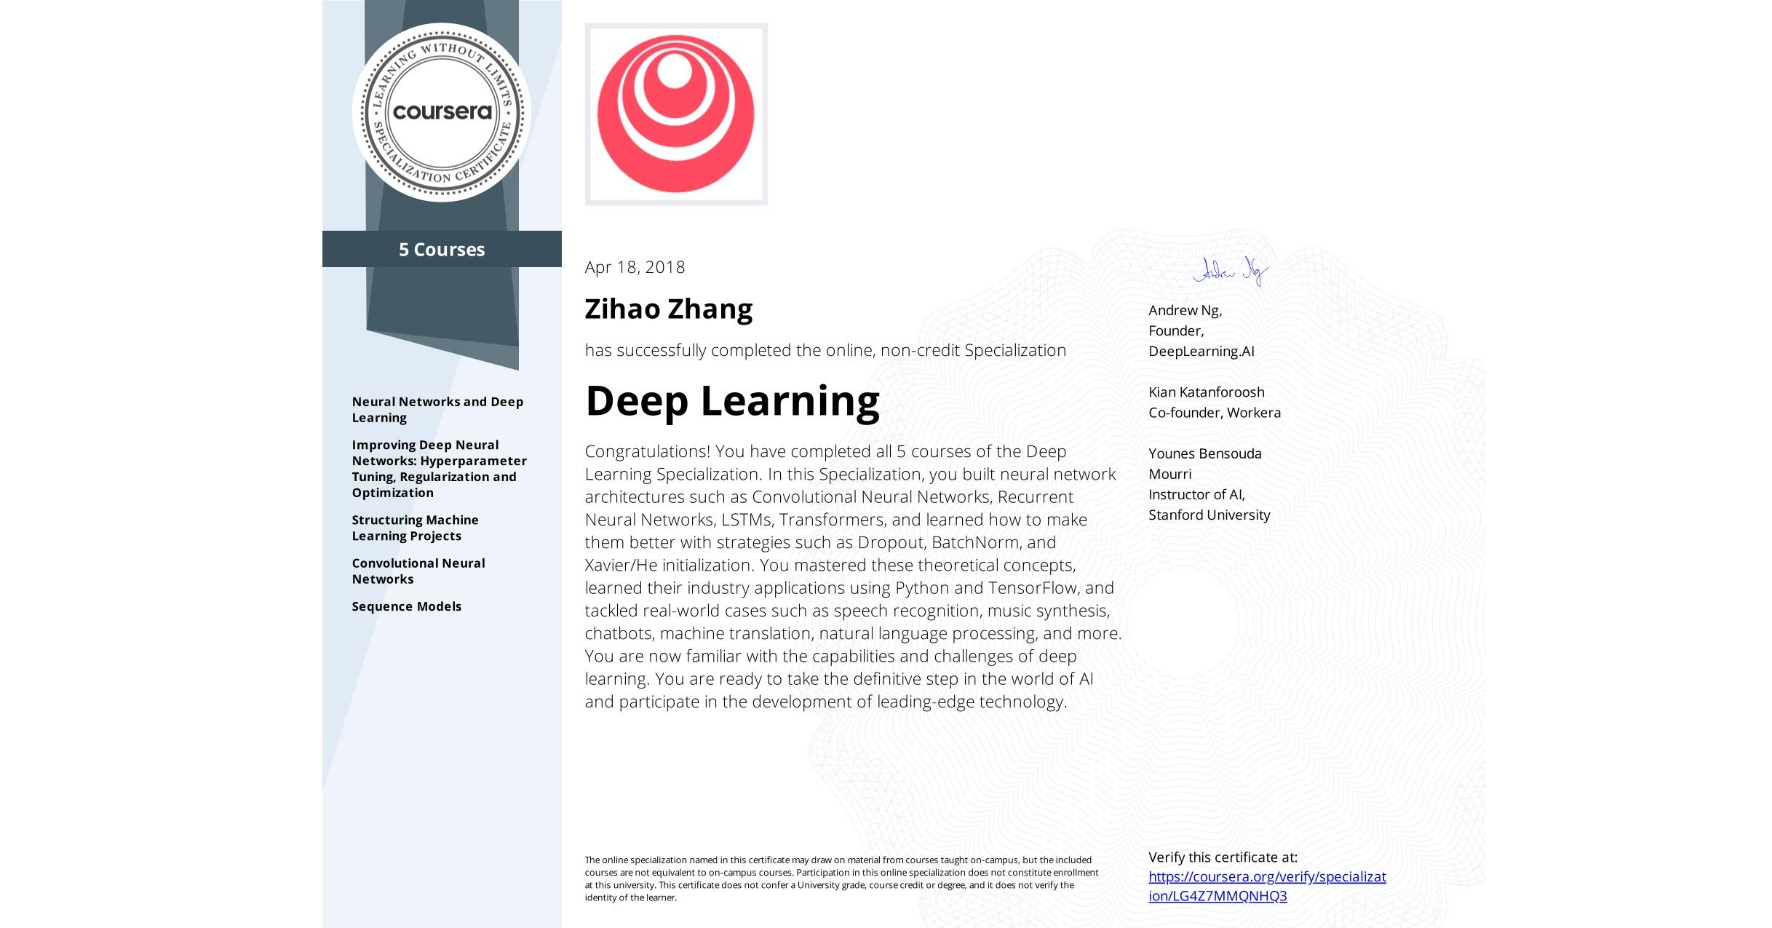 View certificate for Zihao Zhang, Deep Learning, offered through Coursera. Congratulations! You have completed all five courses of the Deep Learning Specialization.  In this Specialization, you built neural network architectures such as Convolutional Neural Networks, Recurrent Neural Networks, LSTMs, Transformers and learned how to make them better with strategies such as Dropout, BatchNorm, Xavier/He initialization, and more. You mastered these theoretical concepts and their application using Python and TensorFlow and also tackled real-world case studies such as autonomous driving, sign language reading, music generation, computer vision, speech recognition, and natural language processing.   You're now familiar with the capabilities, challenges, and consequences of deep learning and are ready to participate in the development of leading-edge AI technology.